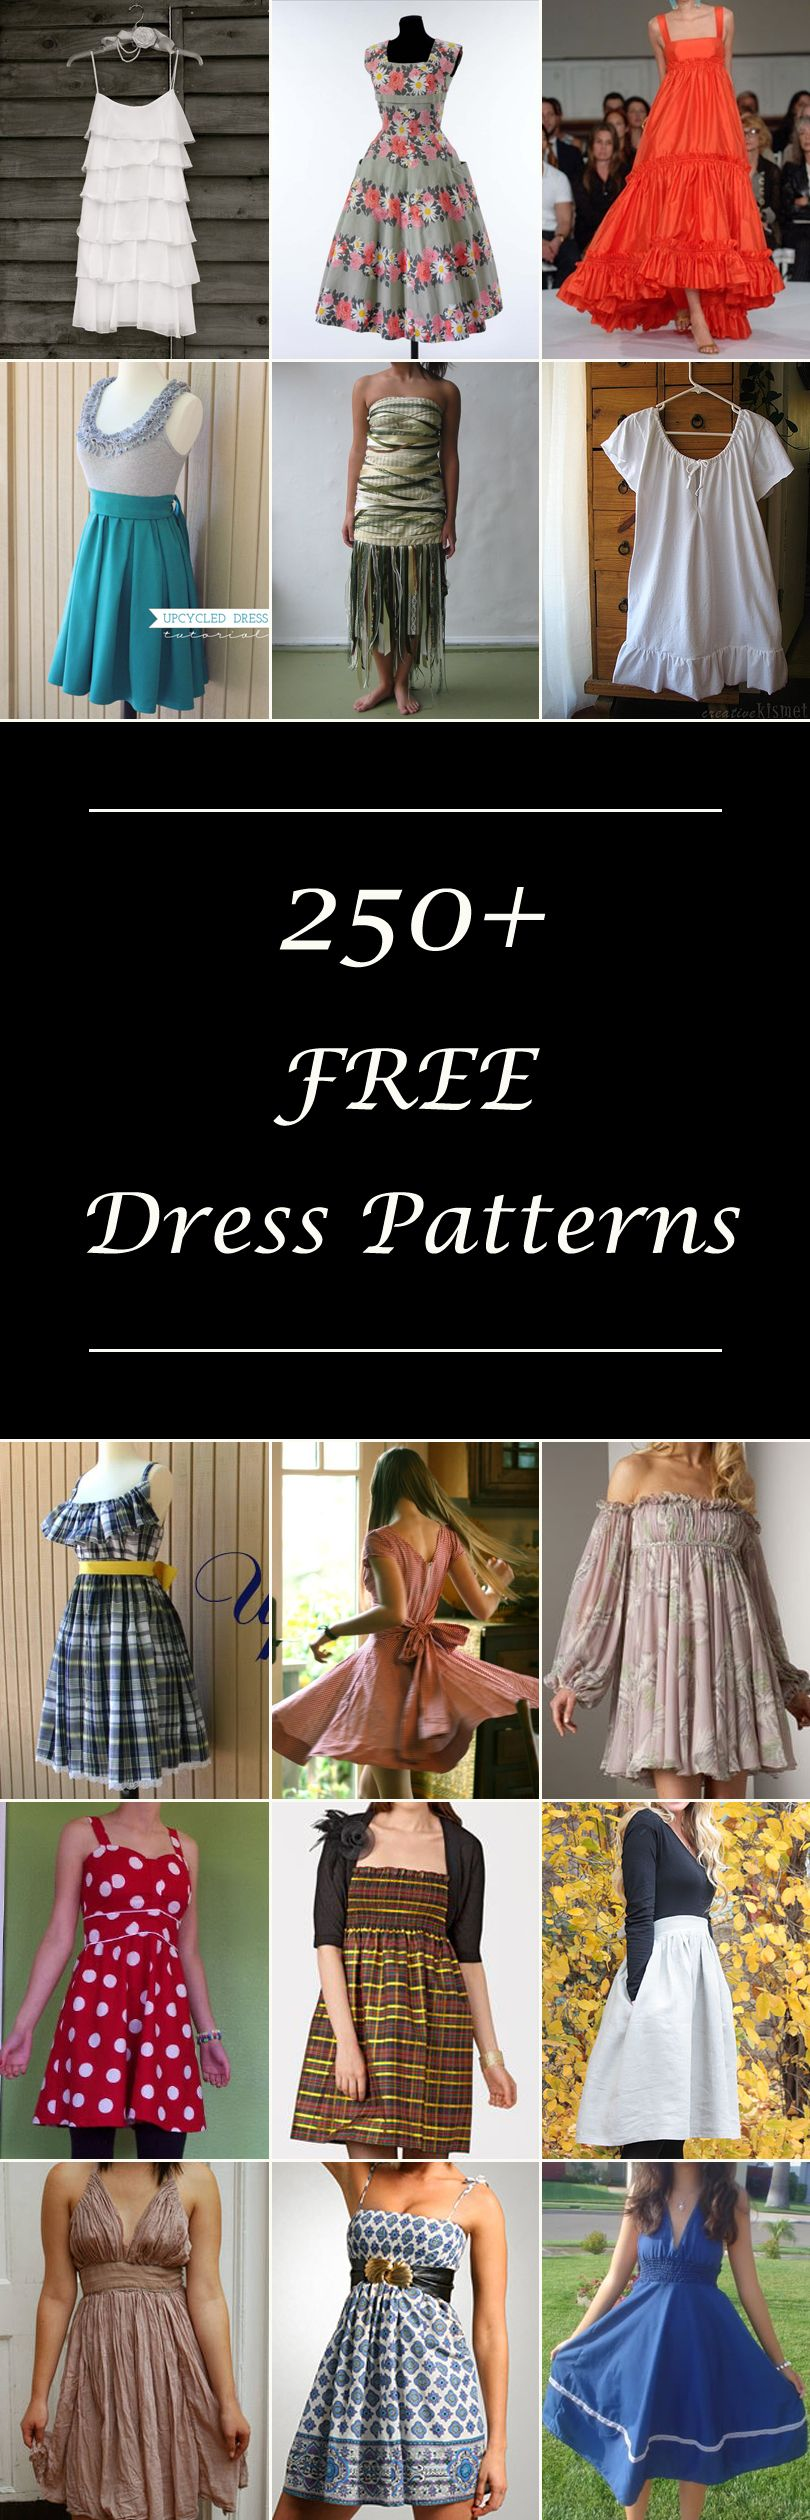 Doityourself Free Pinterest Patterns Women's Sy 260 Dress wTpaxdBaq